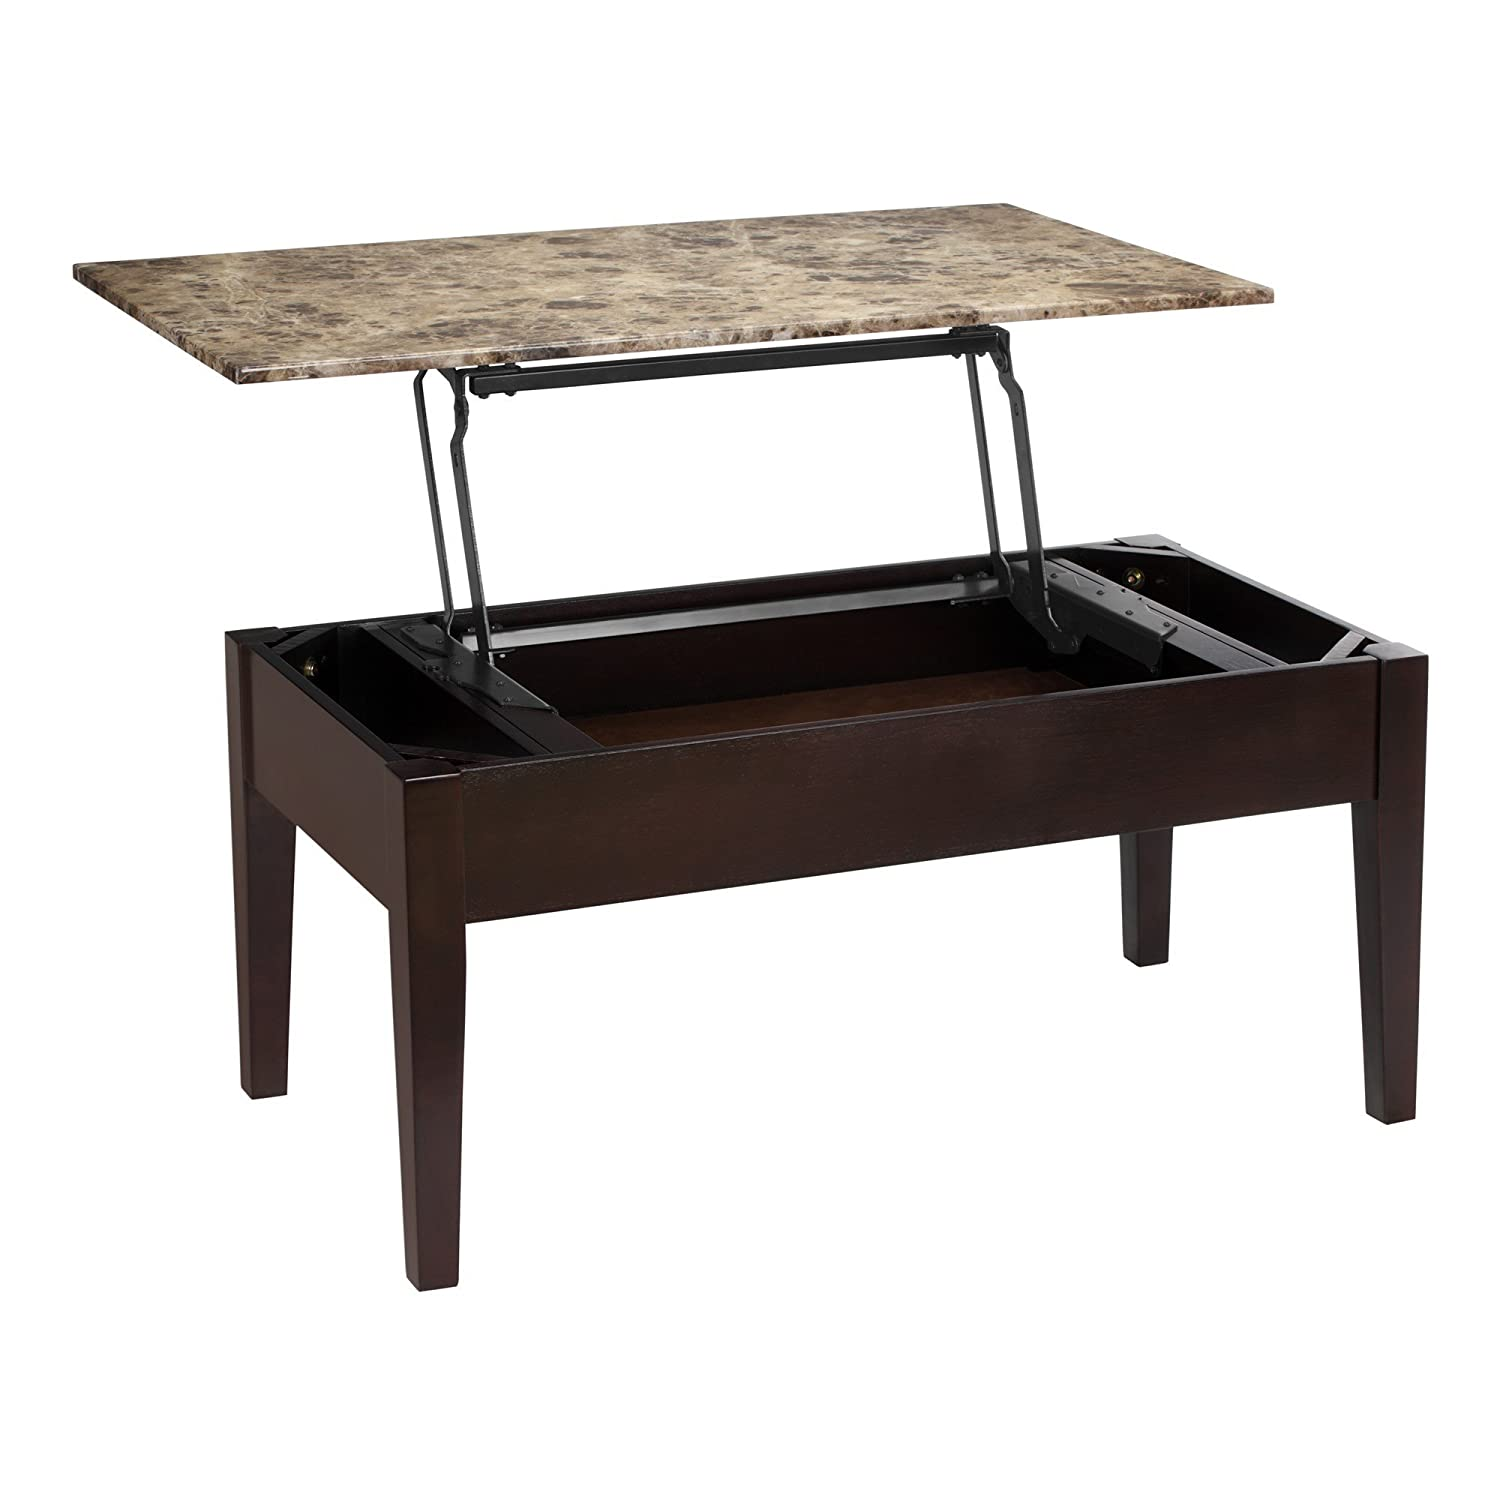 Black and wood coffee table - Amazon Com Dorel Living Faux Marble Lift Top Coffee Table Kitchen Dining